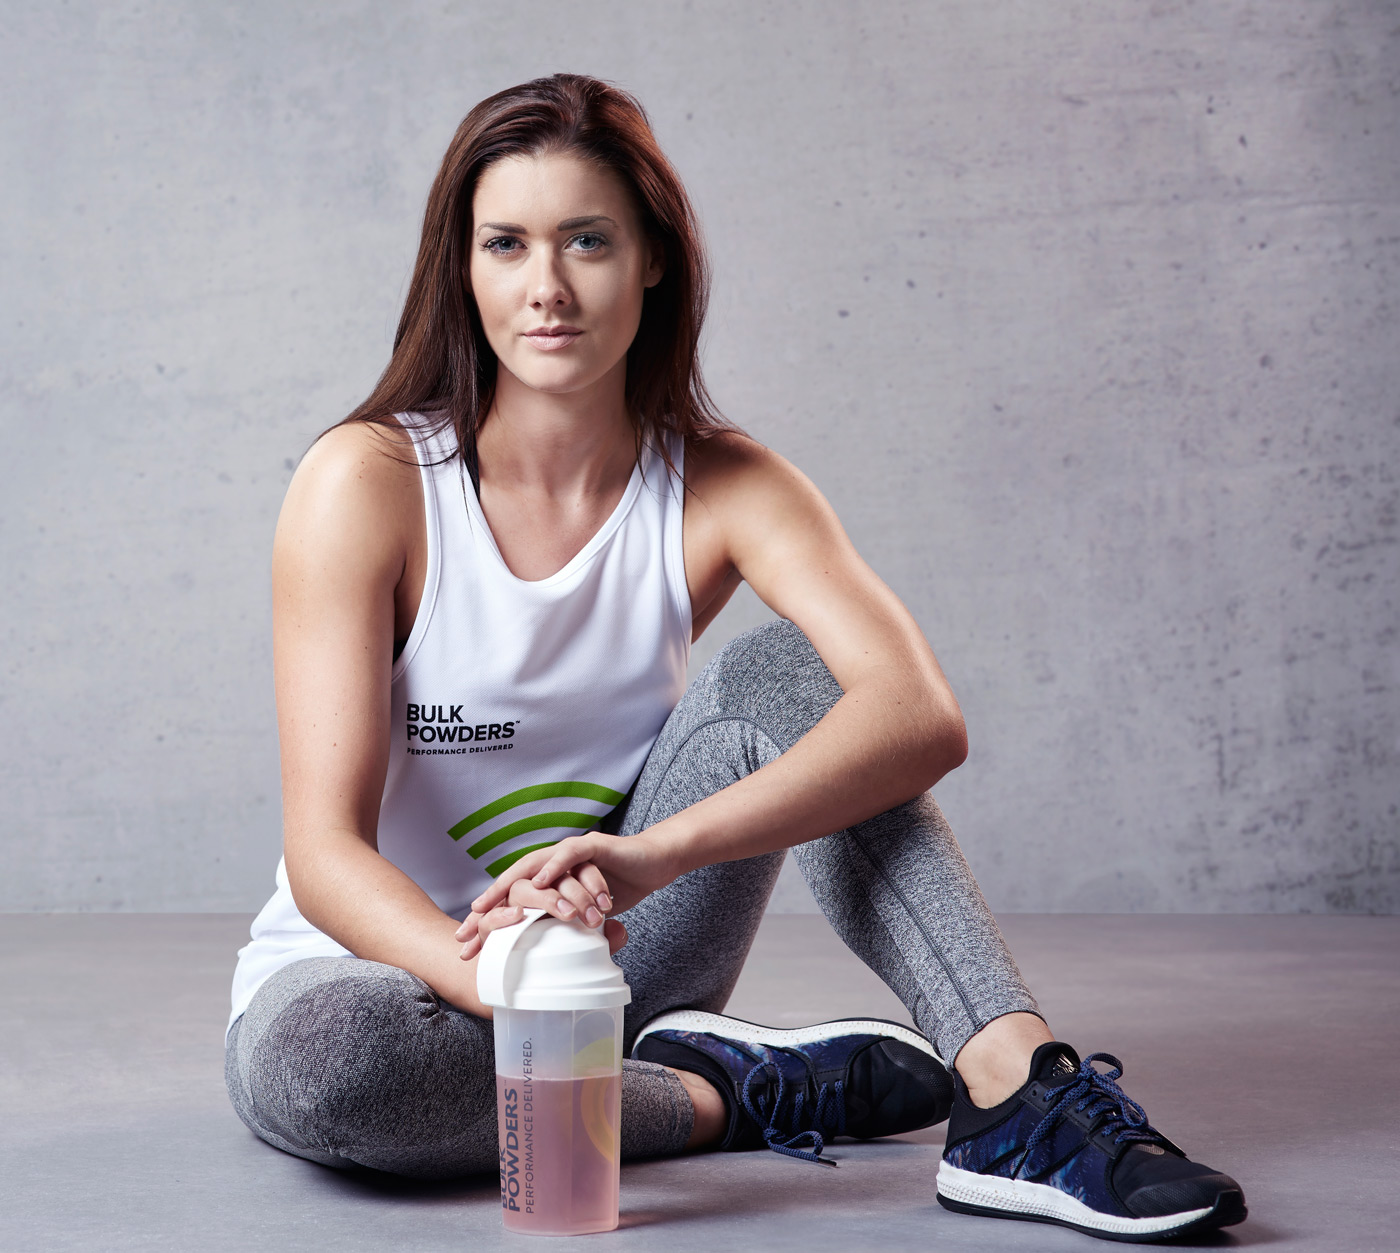 Female athlete posing for Bulk Powders